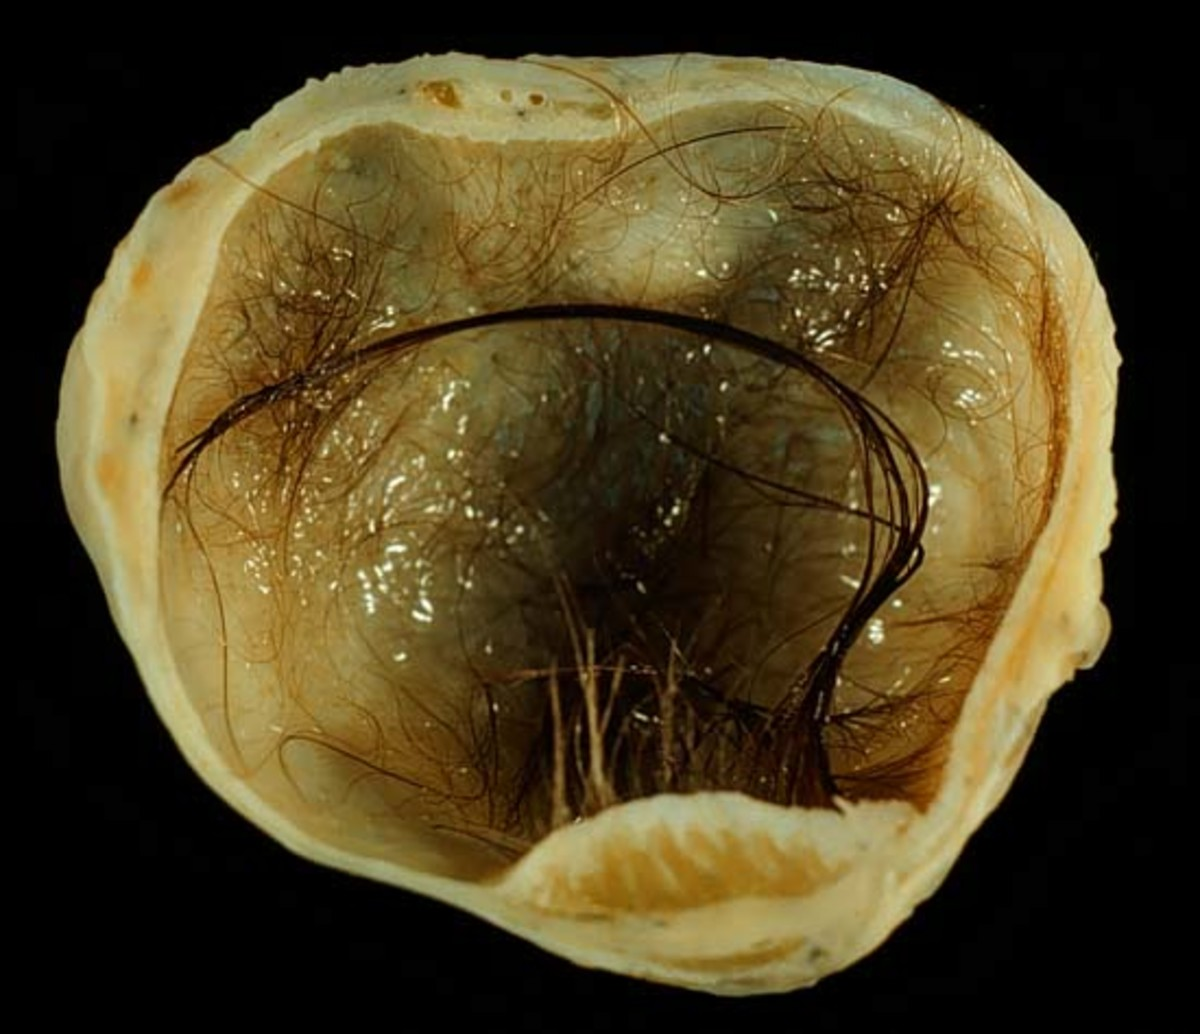 Photo of a Dermoid Cyst: notice the hair that has formed inside this mature cyst!